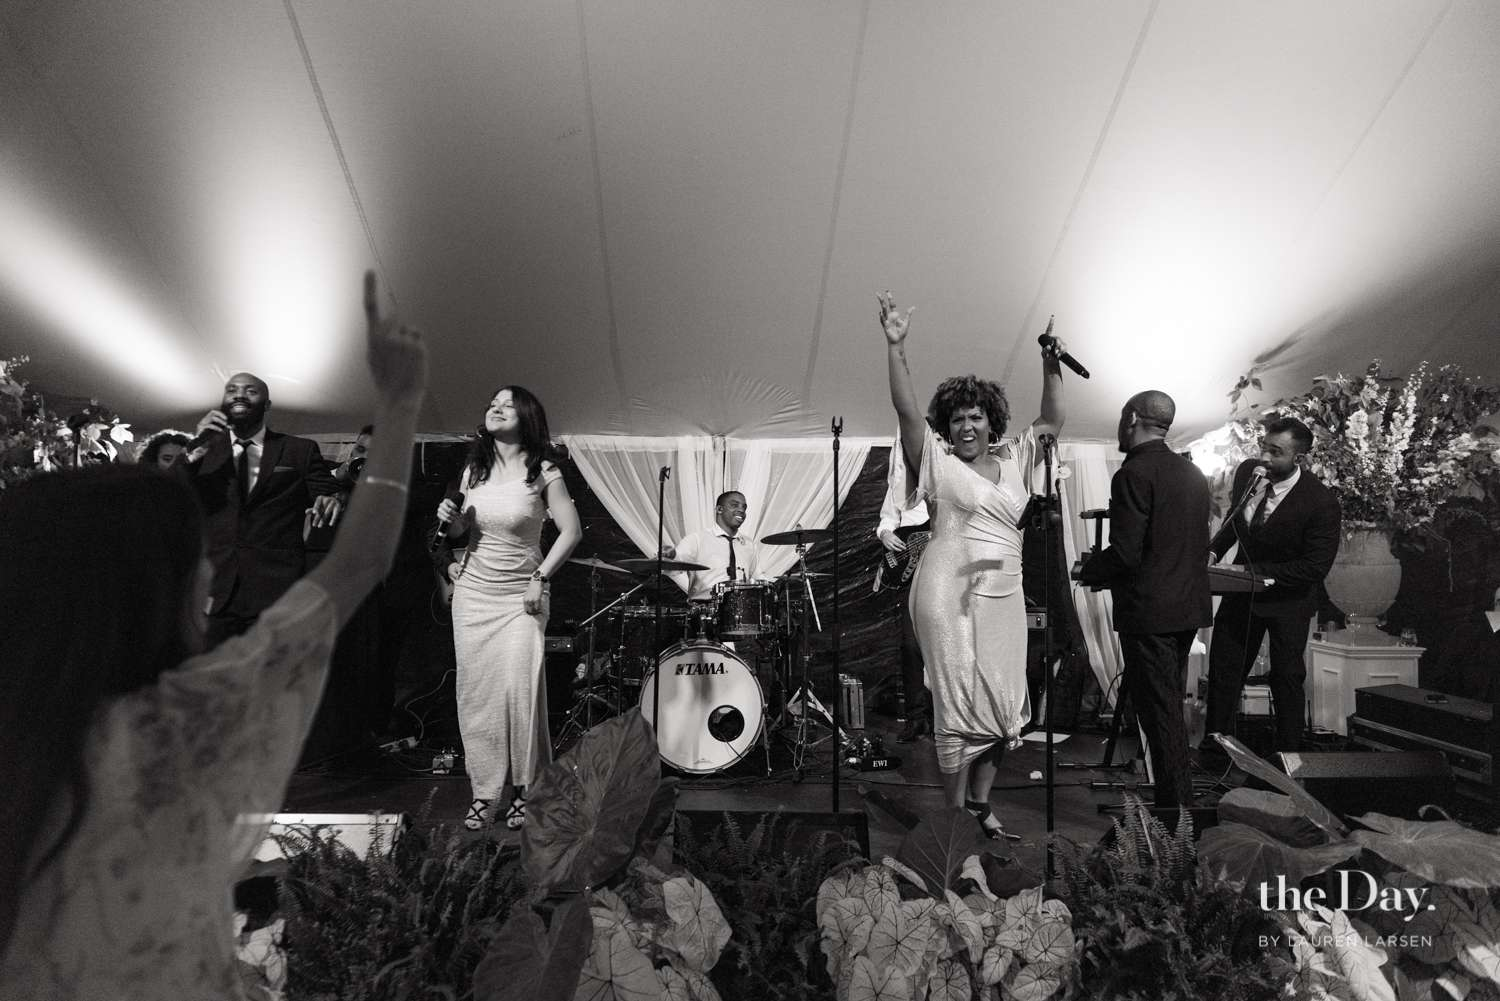 Performers on stage at a wedding reception